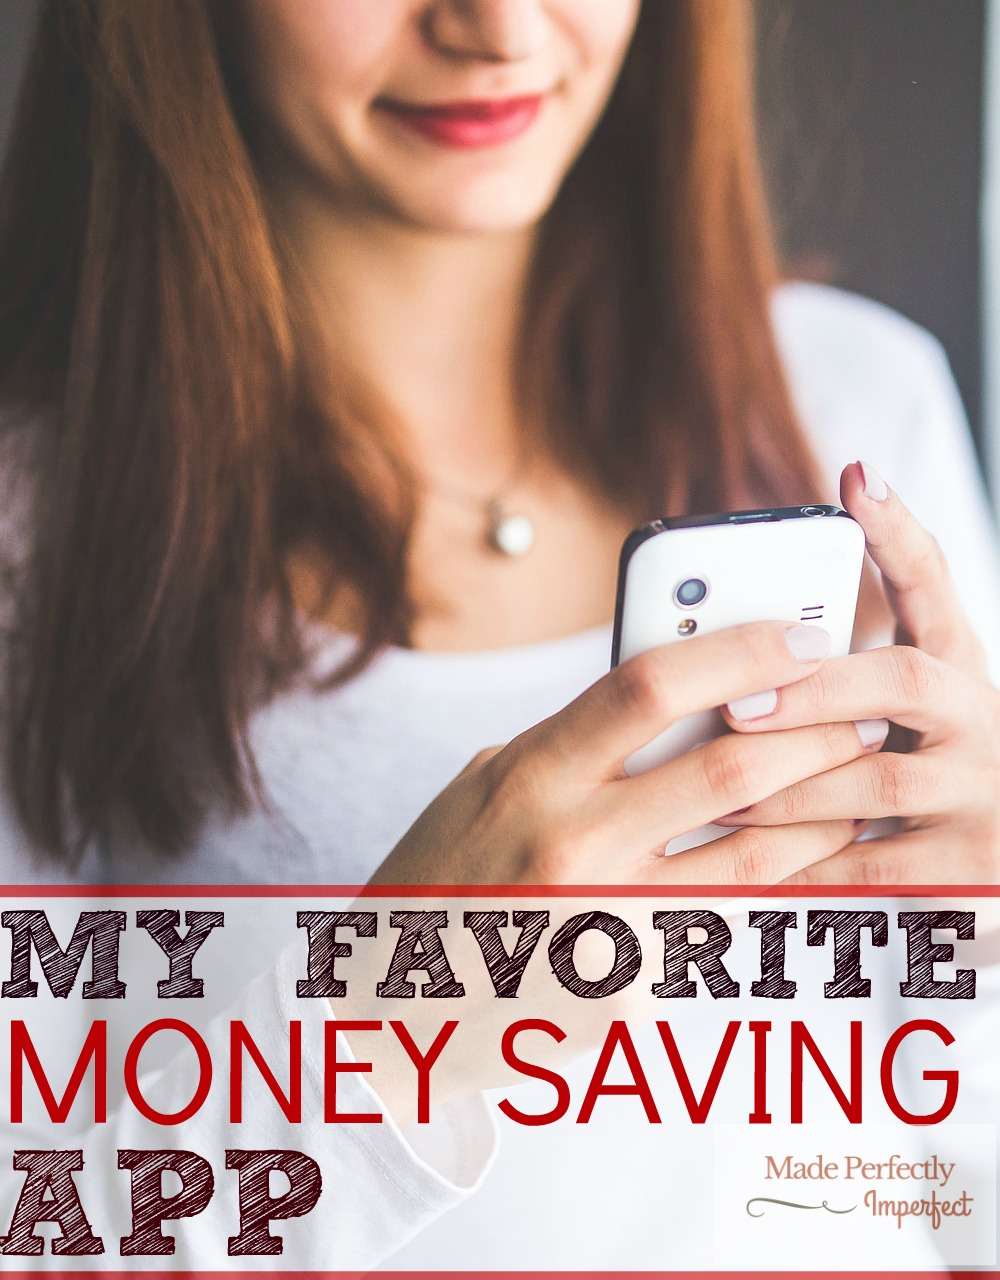 My favorite money saving app! I love using this app and all my friends too!